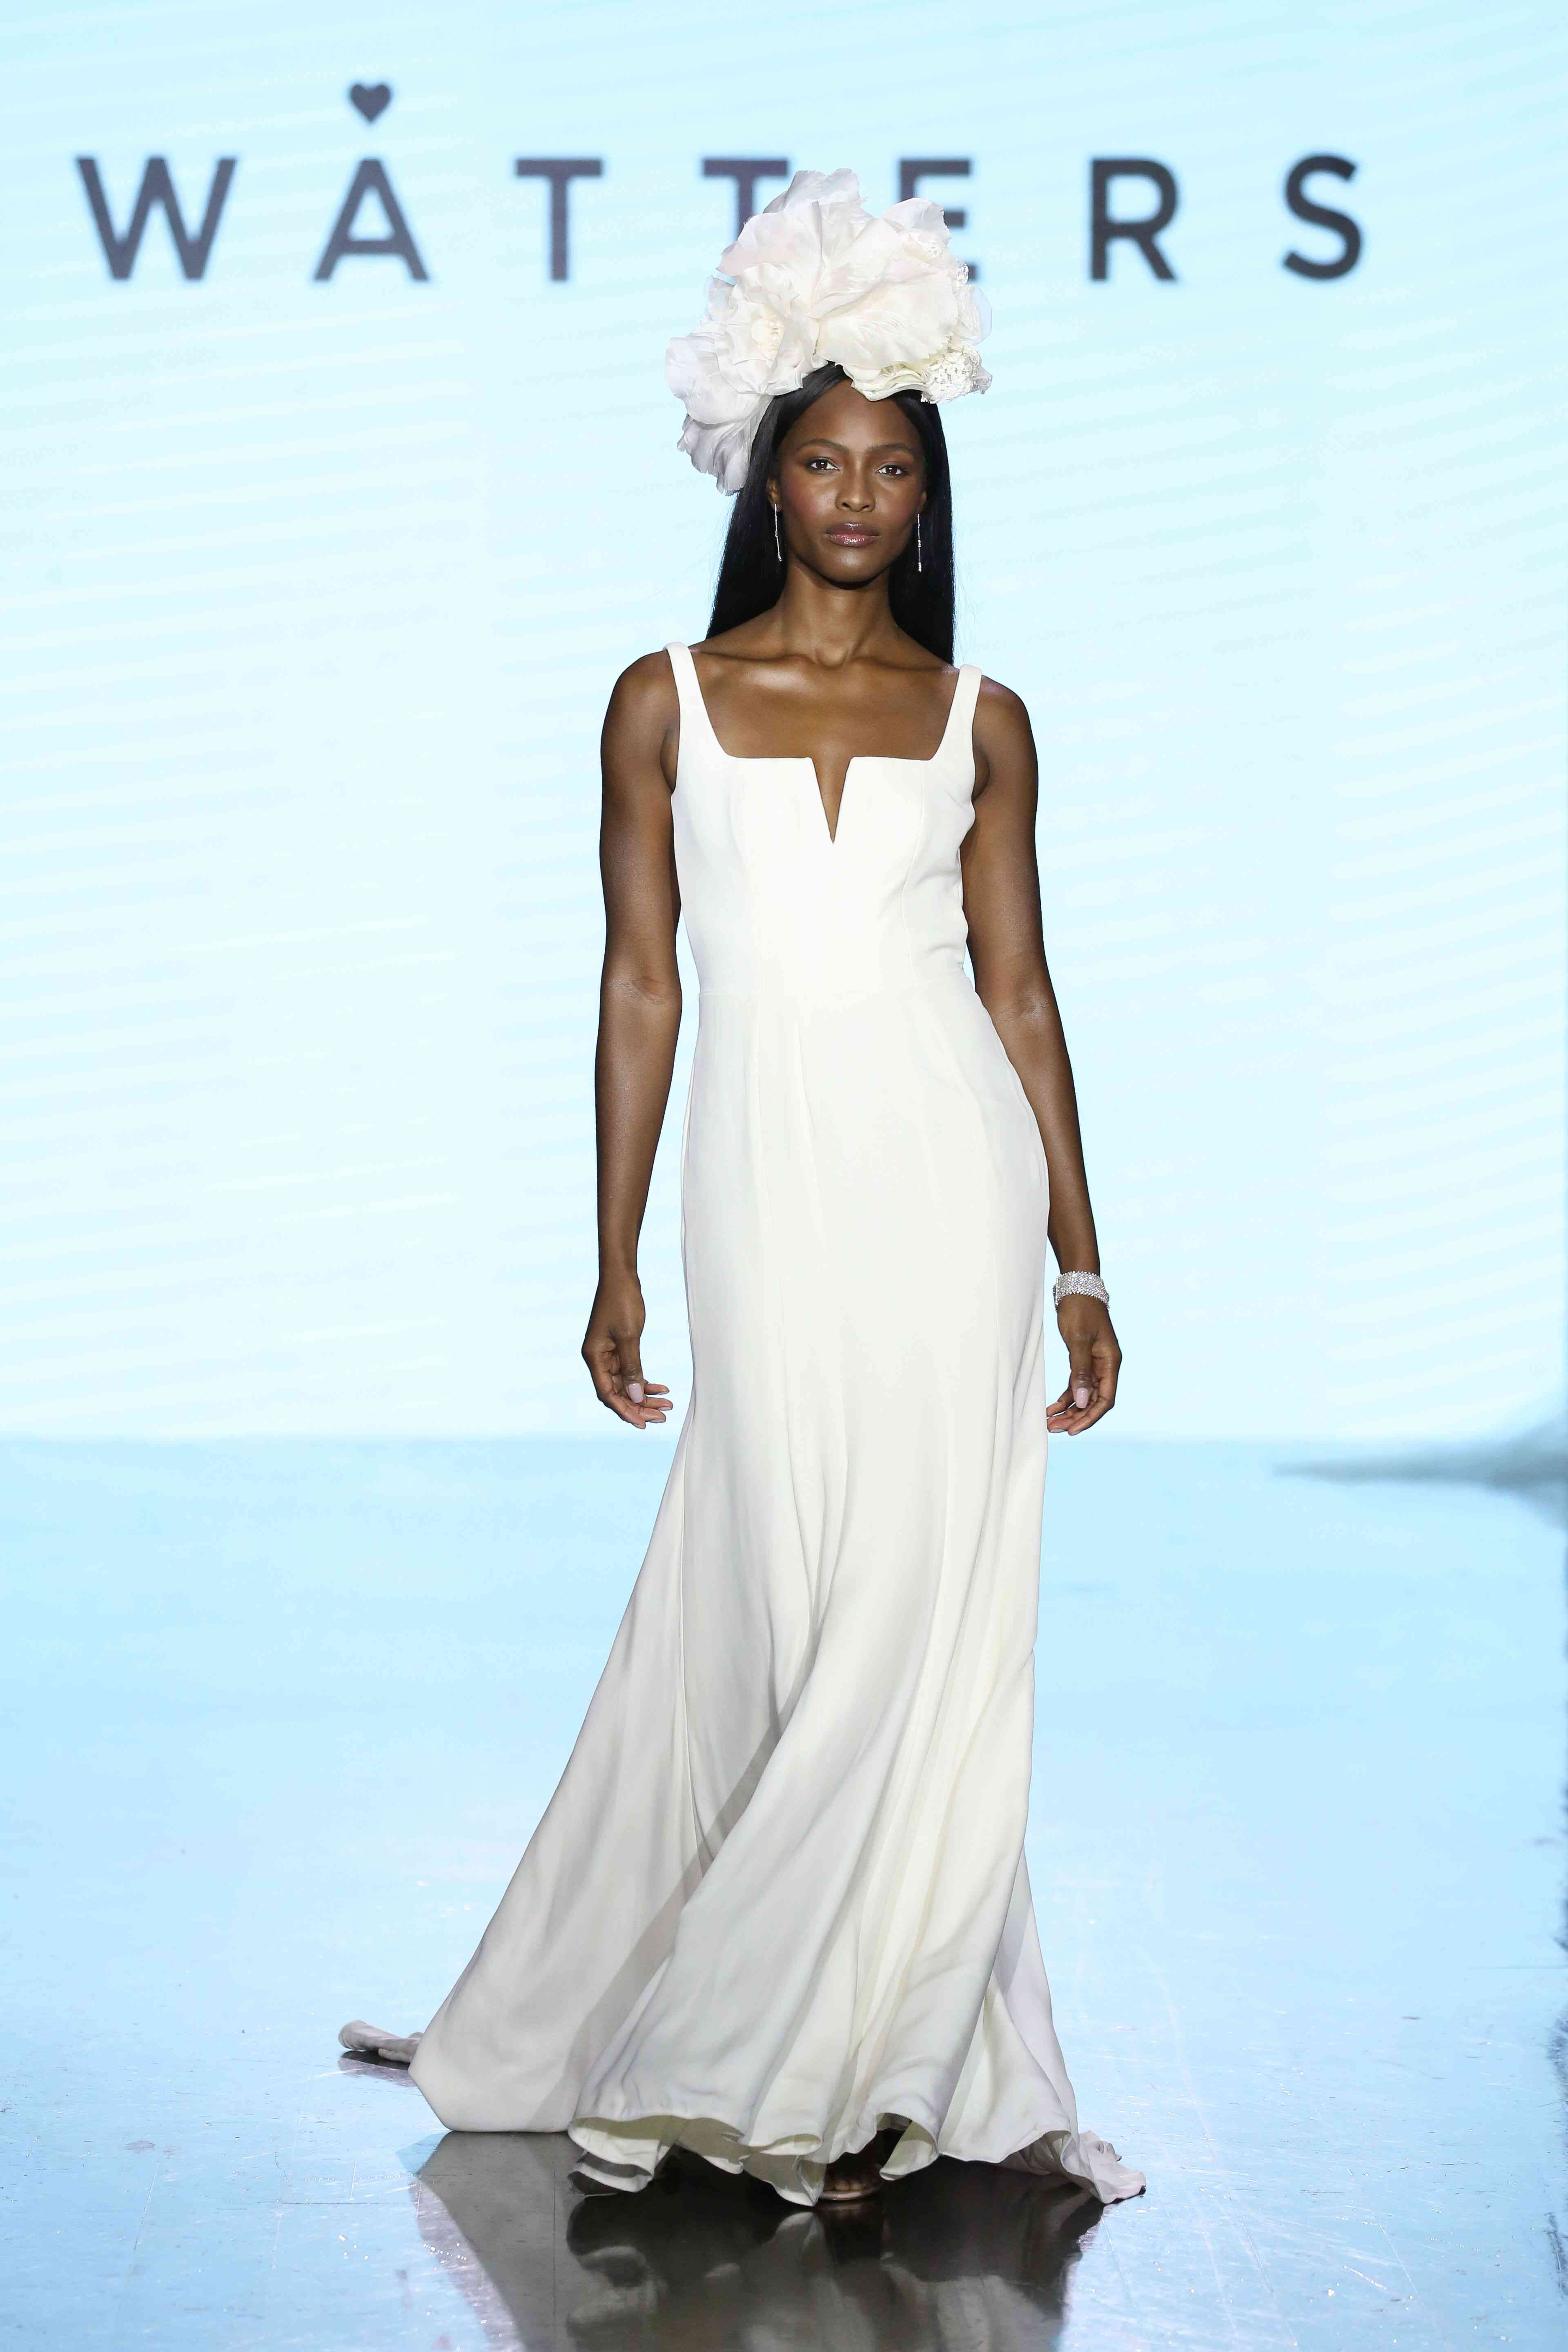 Model on runway in sleeveless wedding dress with notched square neckline